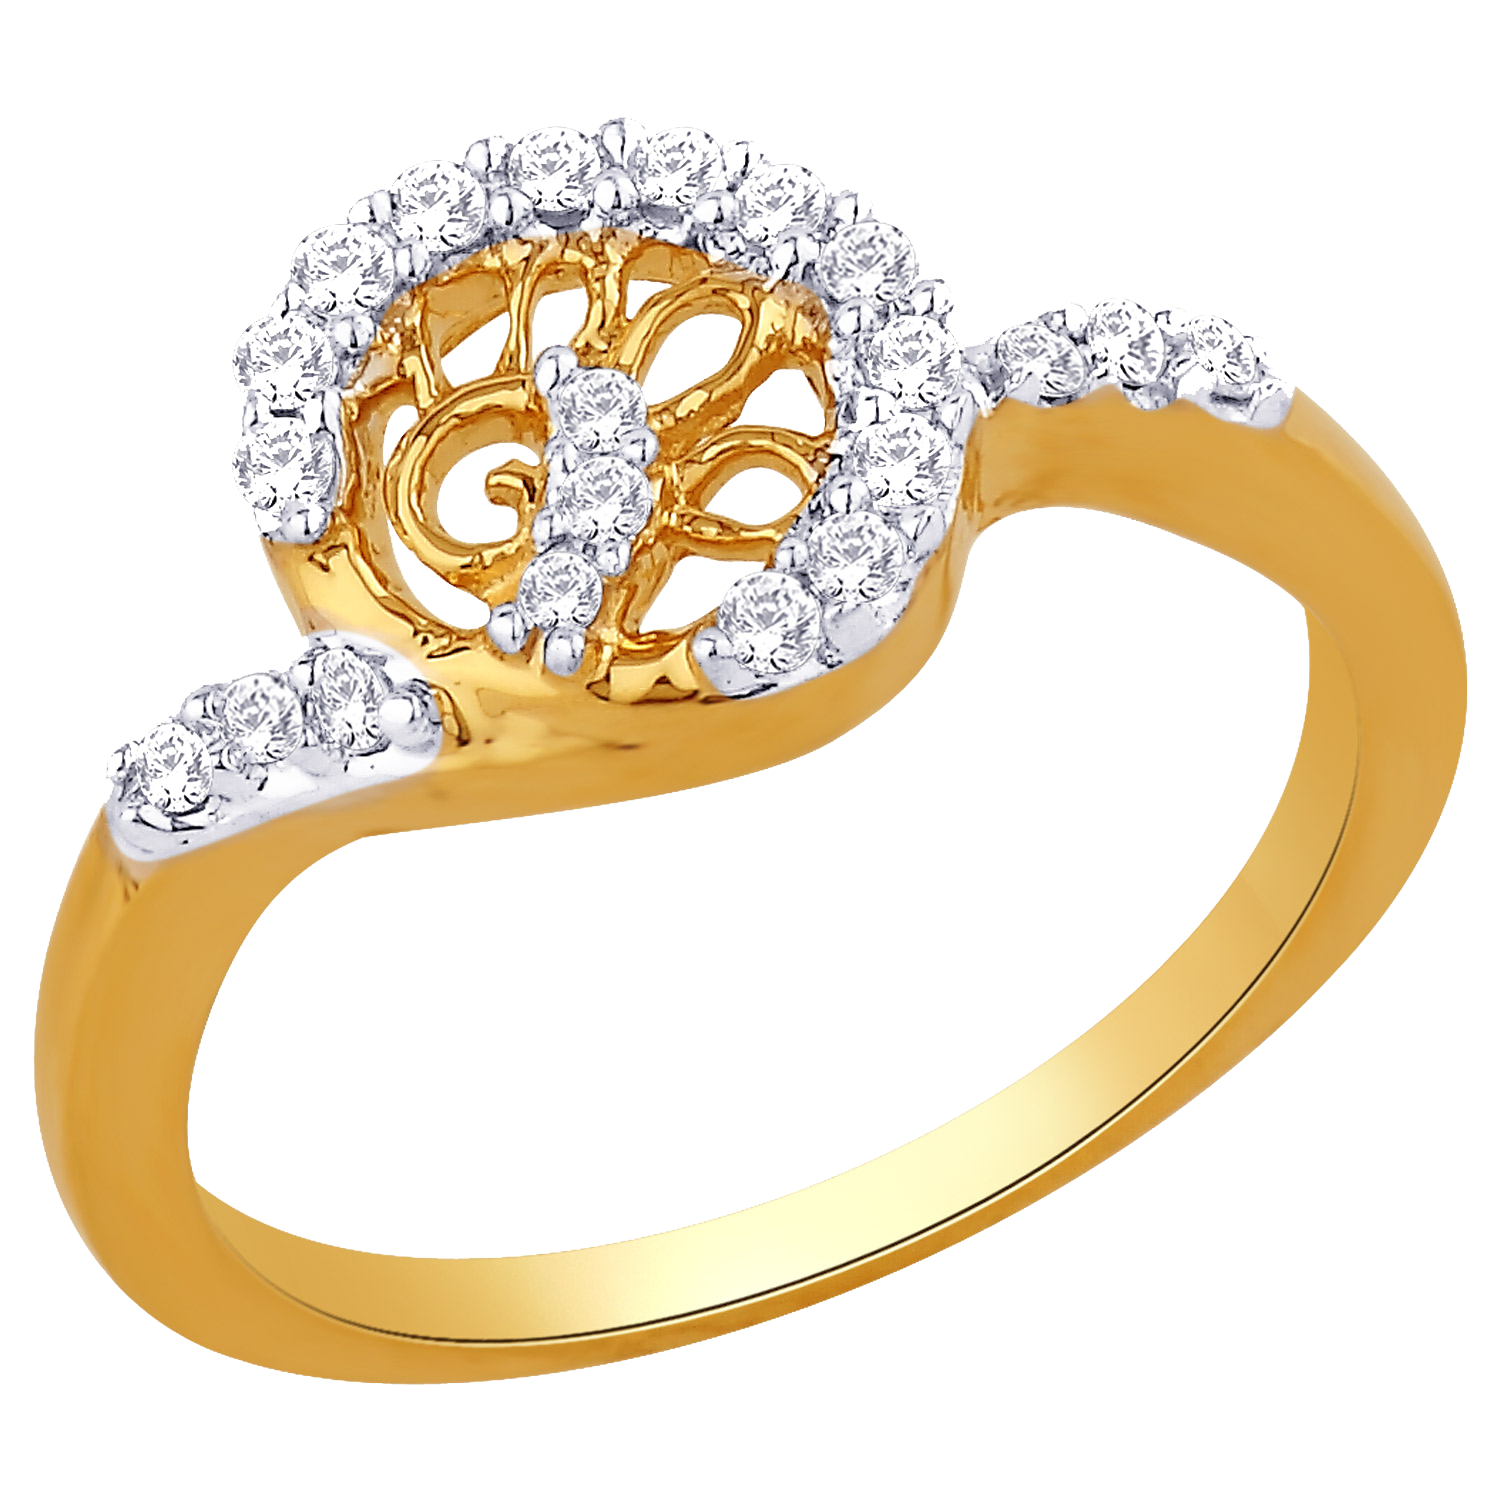 Jewellery Ring PNG HD - Jewellary HD PNG